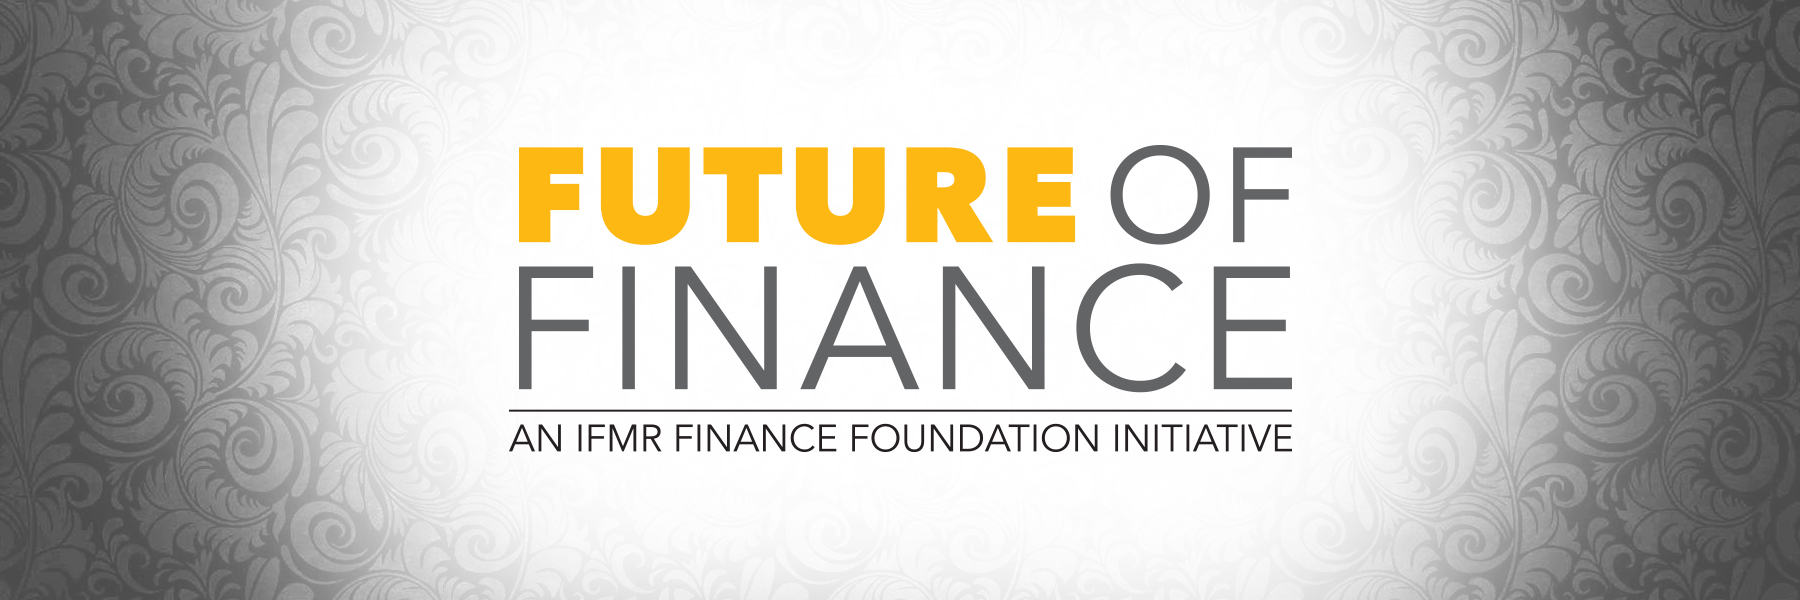 future-of-finance